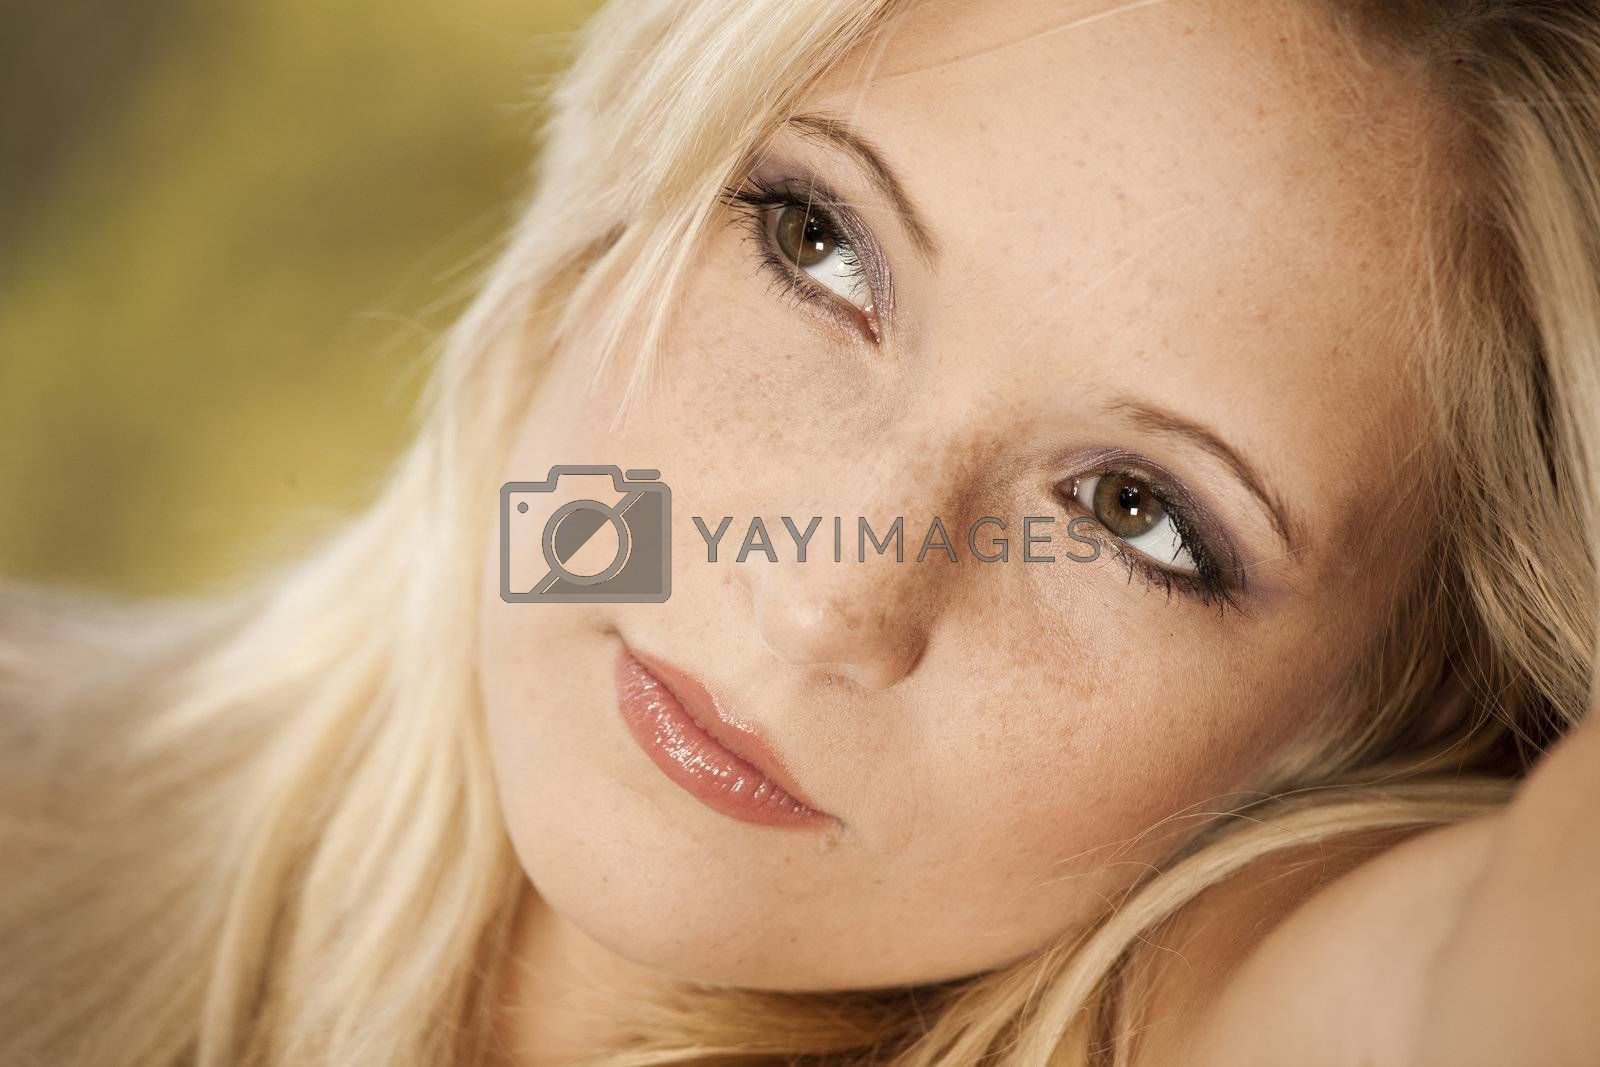 Outdoor portrait of a beautiful young woman thinking on something